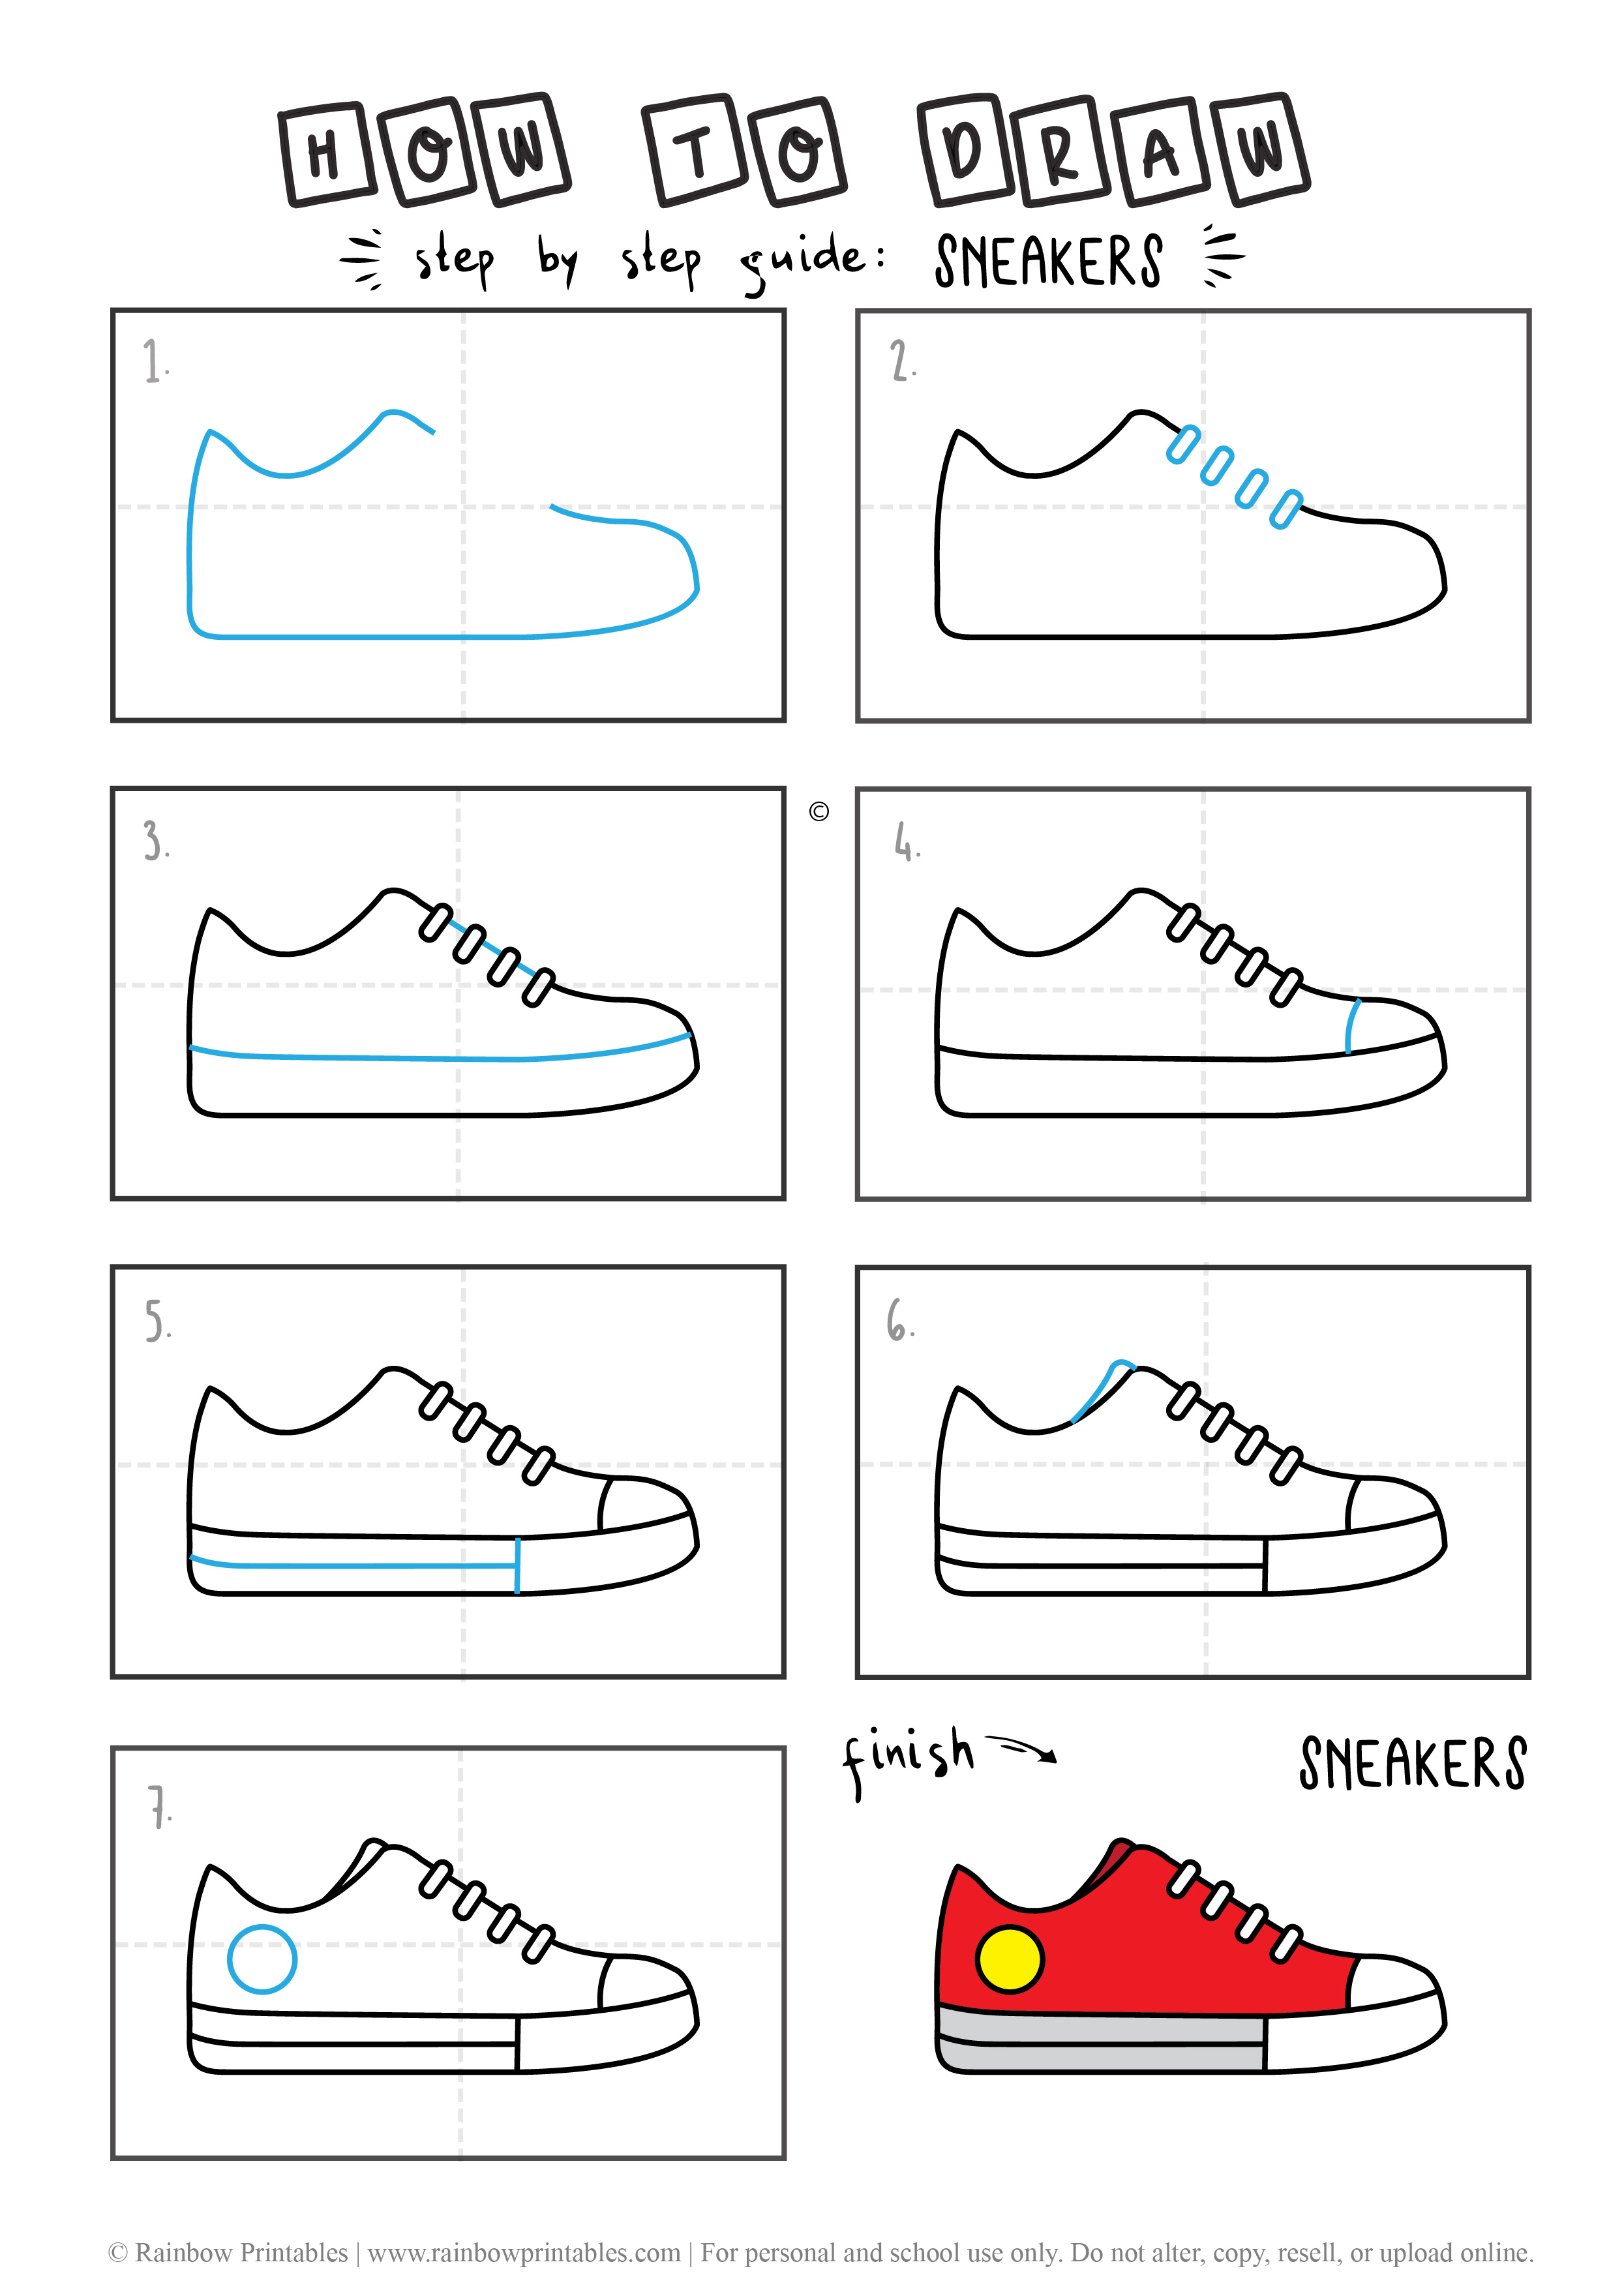 HOW TO DRAW CONVERSE SNEAKER SHOES EVERYDAY CLOTHES GUIDE ILLUSTRATION STEP BY STEP EASY SIMPLE FOR KIDS